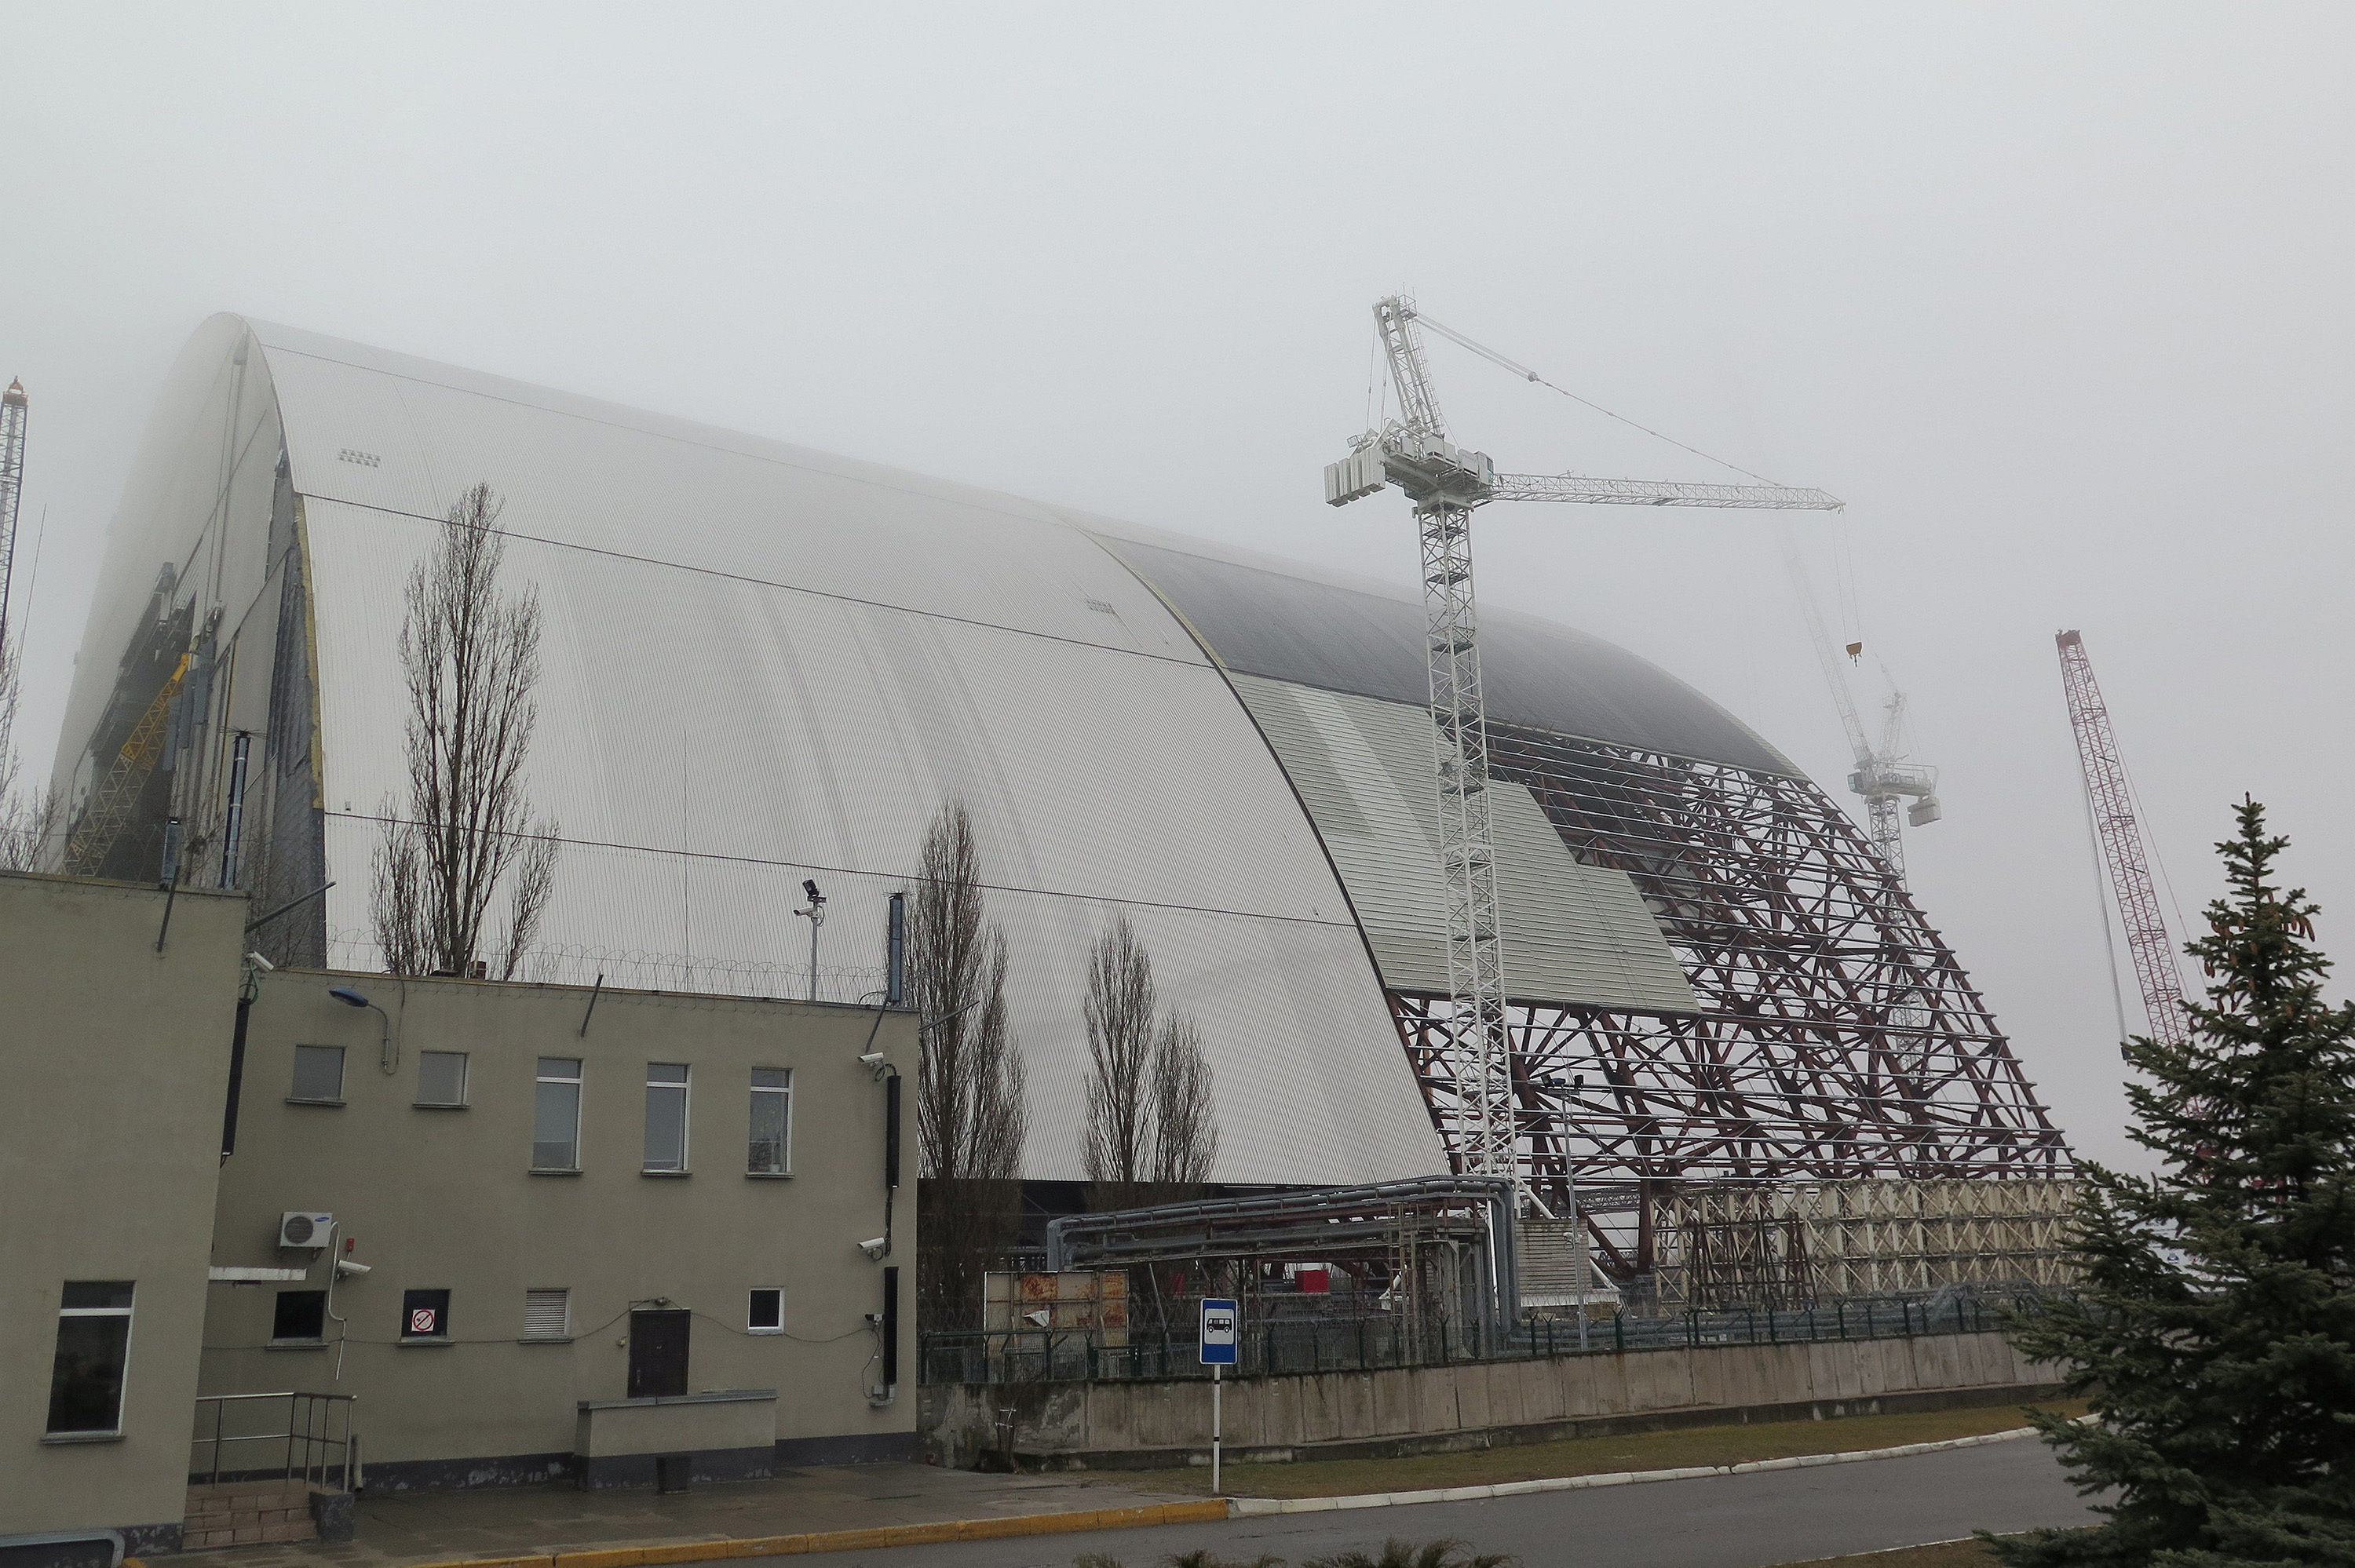 Chernobyl Sarcophagus Built To Hold Fallout Has 'Very High